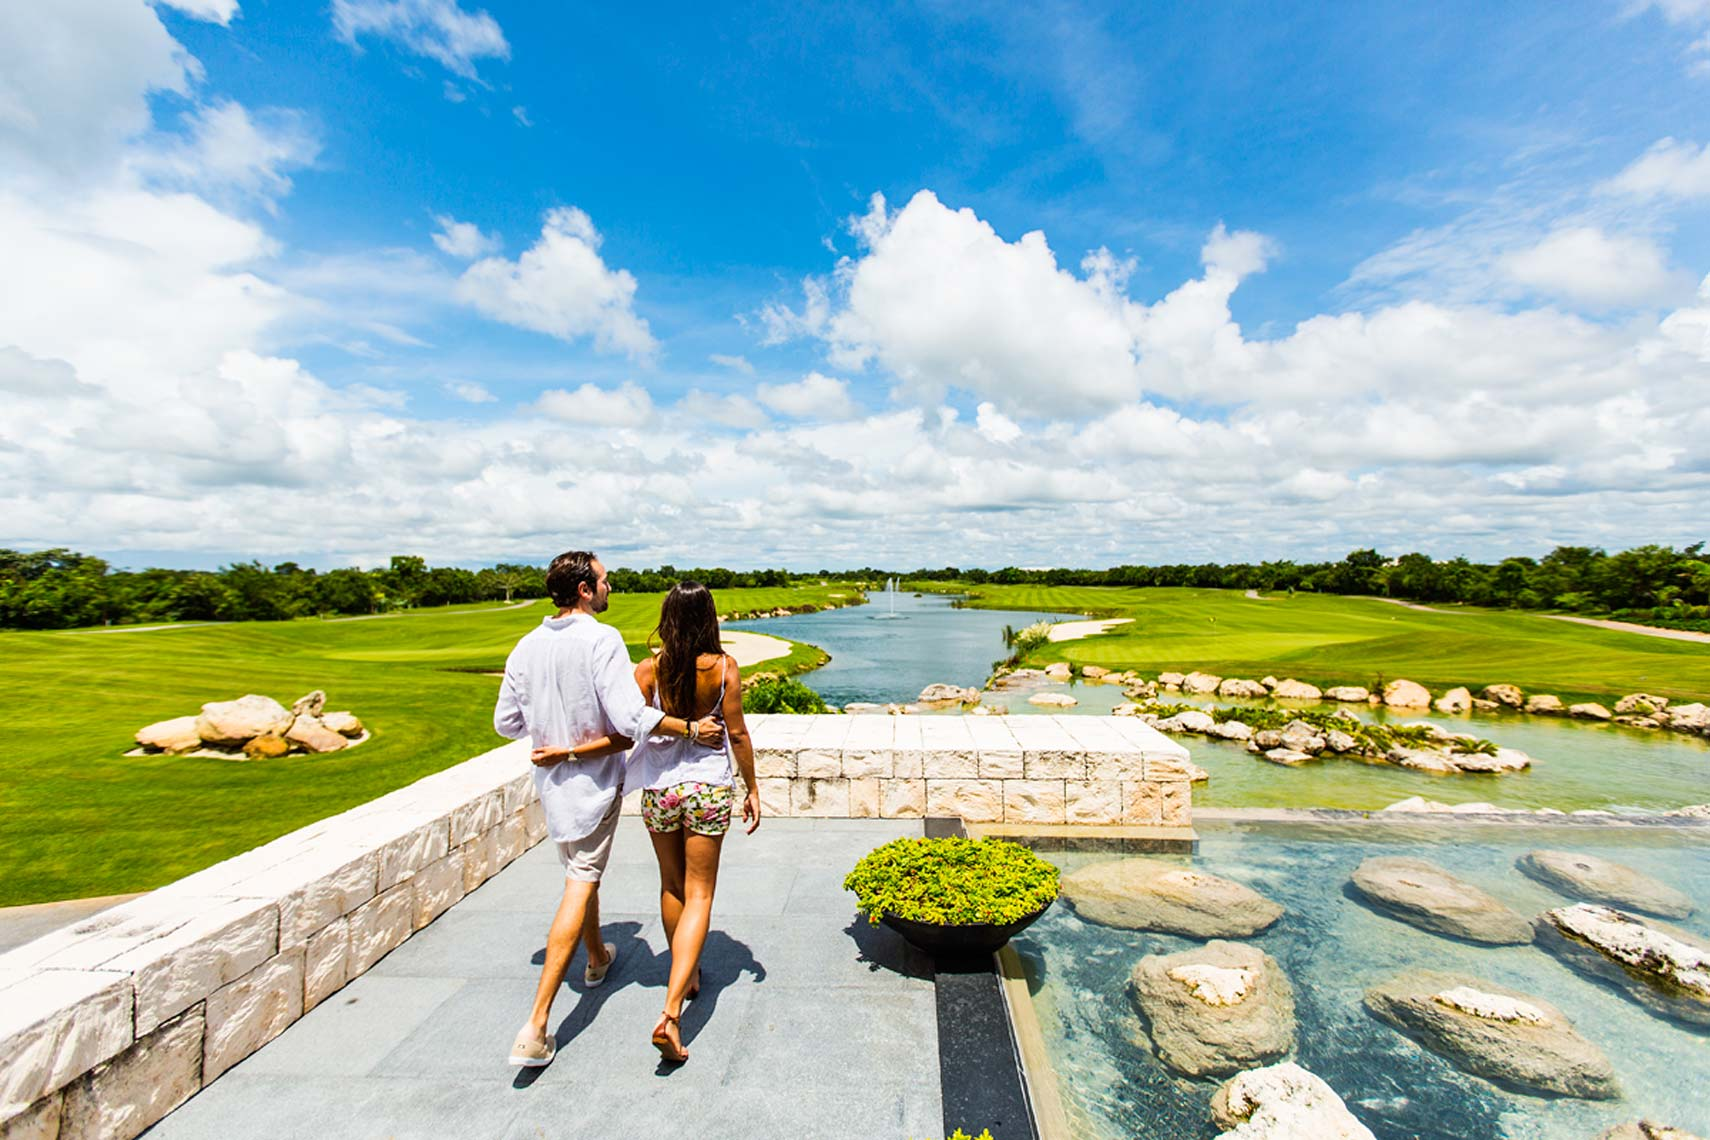 022-Chris-Hunt-Travel-Photography-Mexico-Yucatan-Yucatan-Yucatan-Country-Club-0352